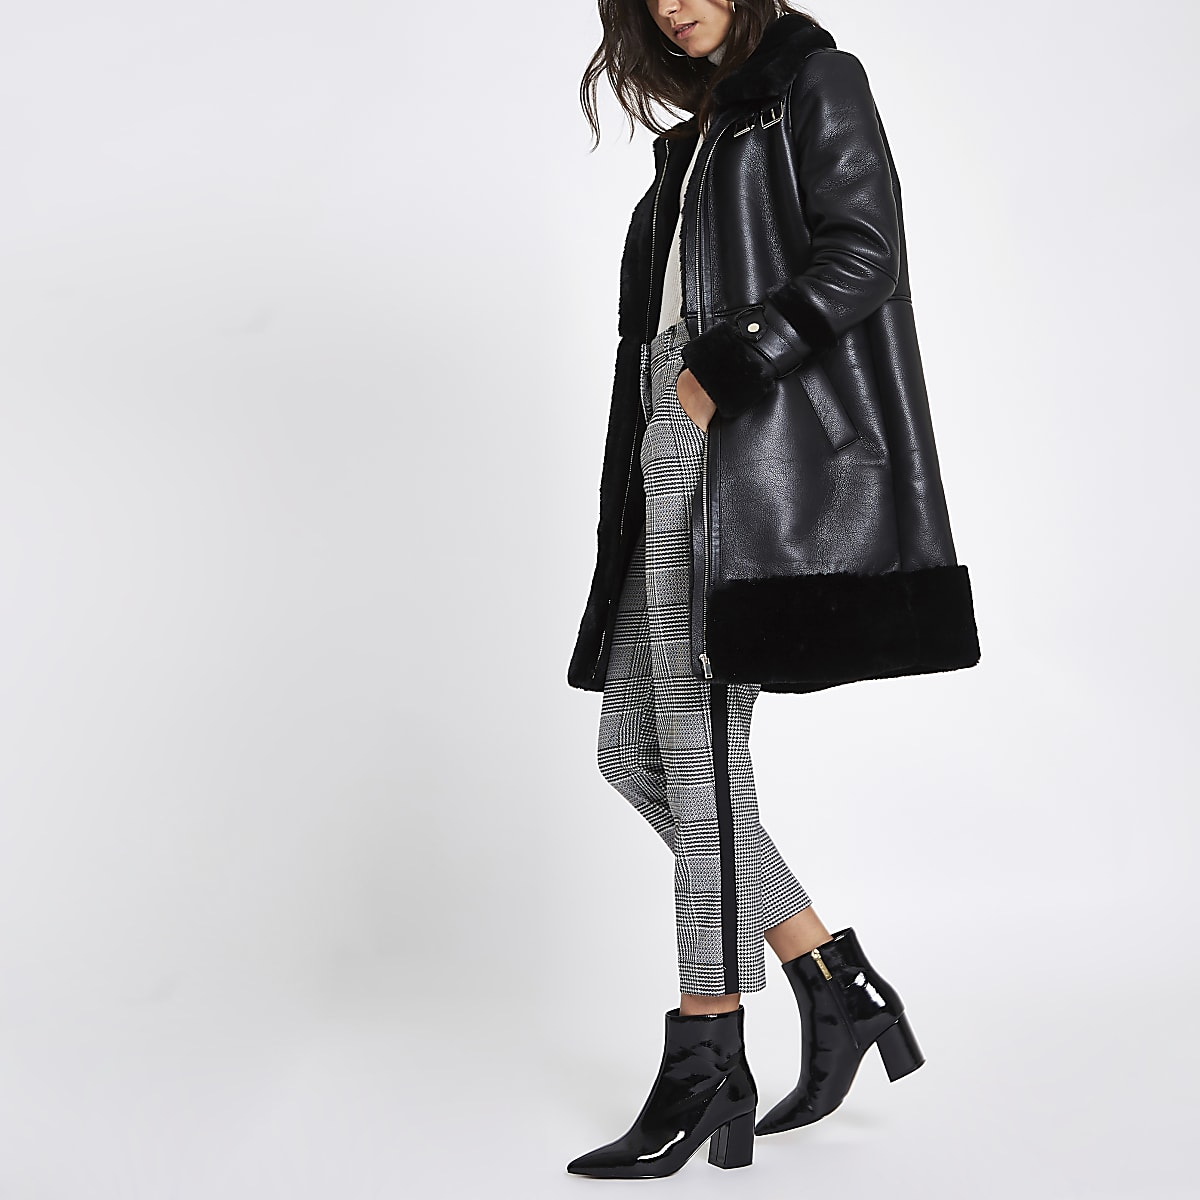 Black faux leather oversized aviator jacket